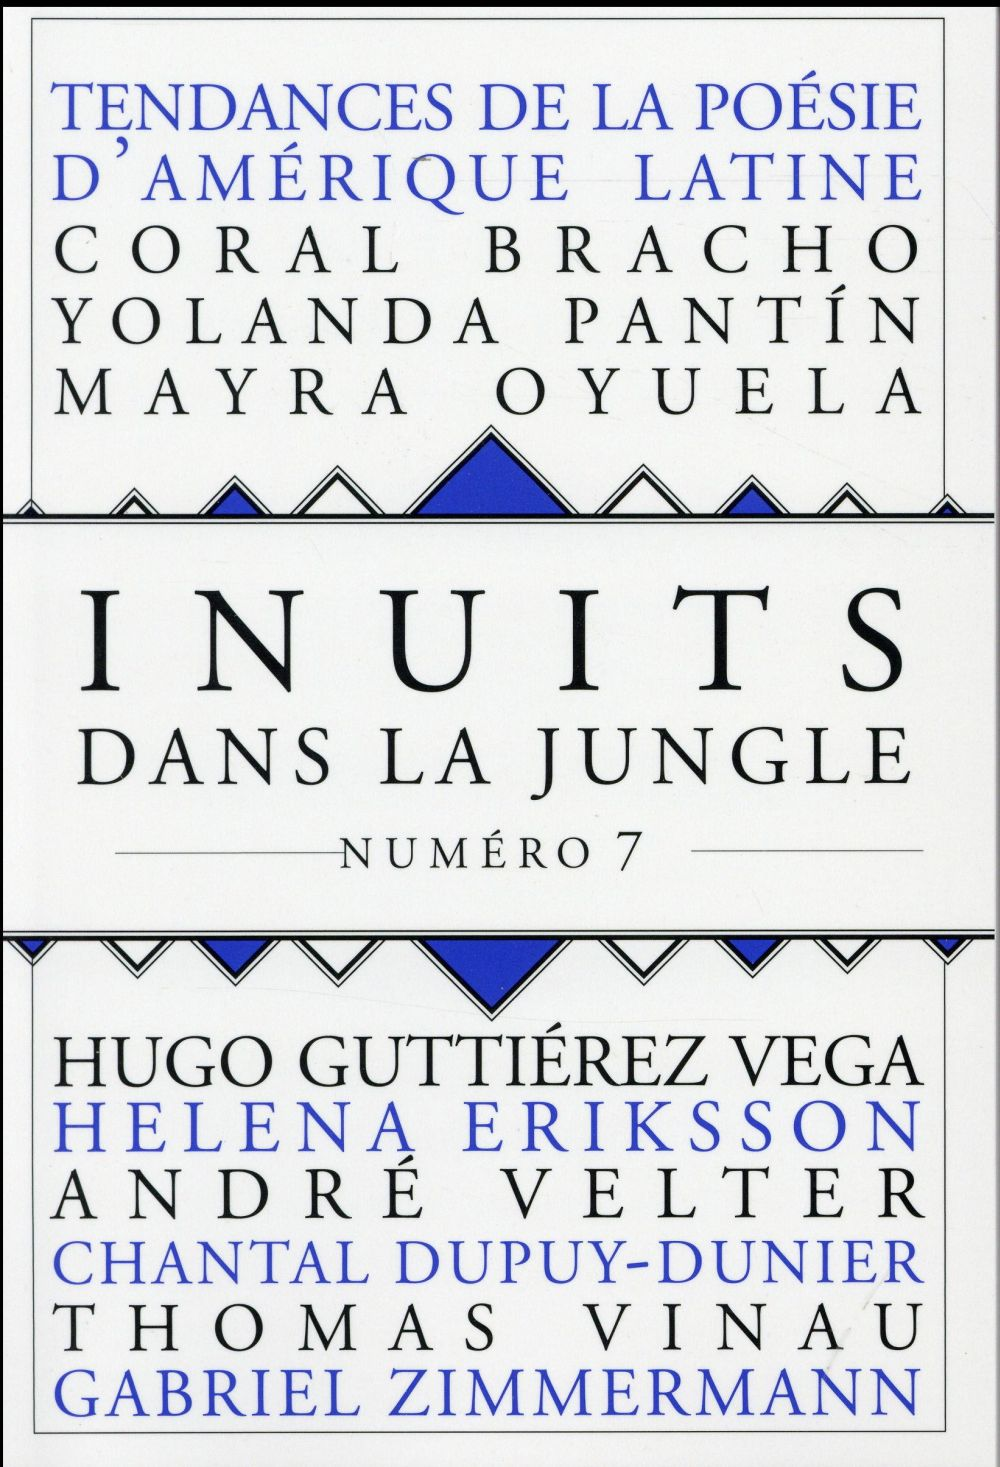 INUITS DANS LA JUNGLE - NUMERO 7 TENDANCE DE LA POESIE D'AMERIQUE - VOLUME 07